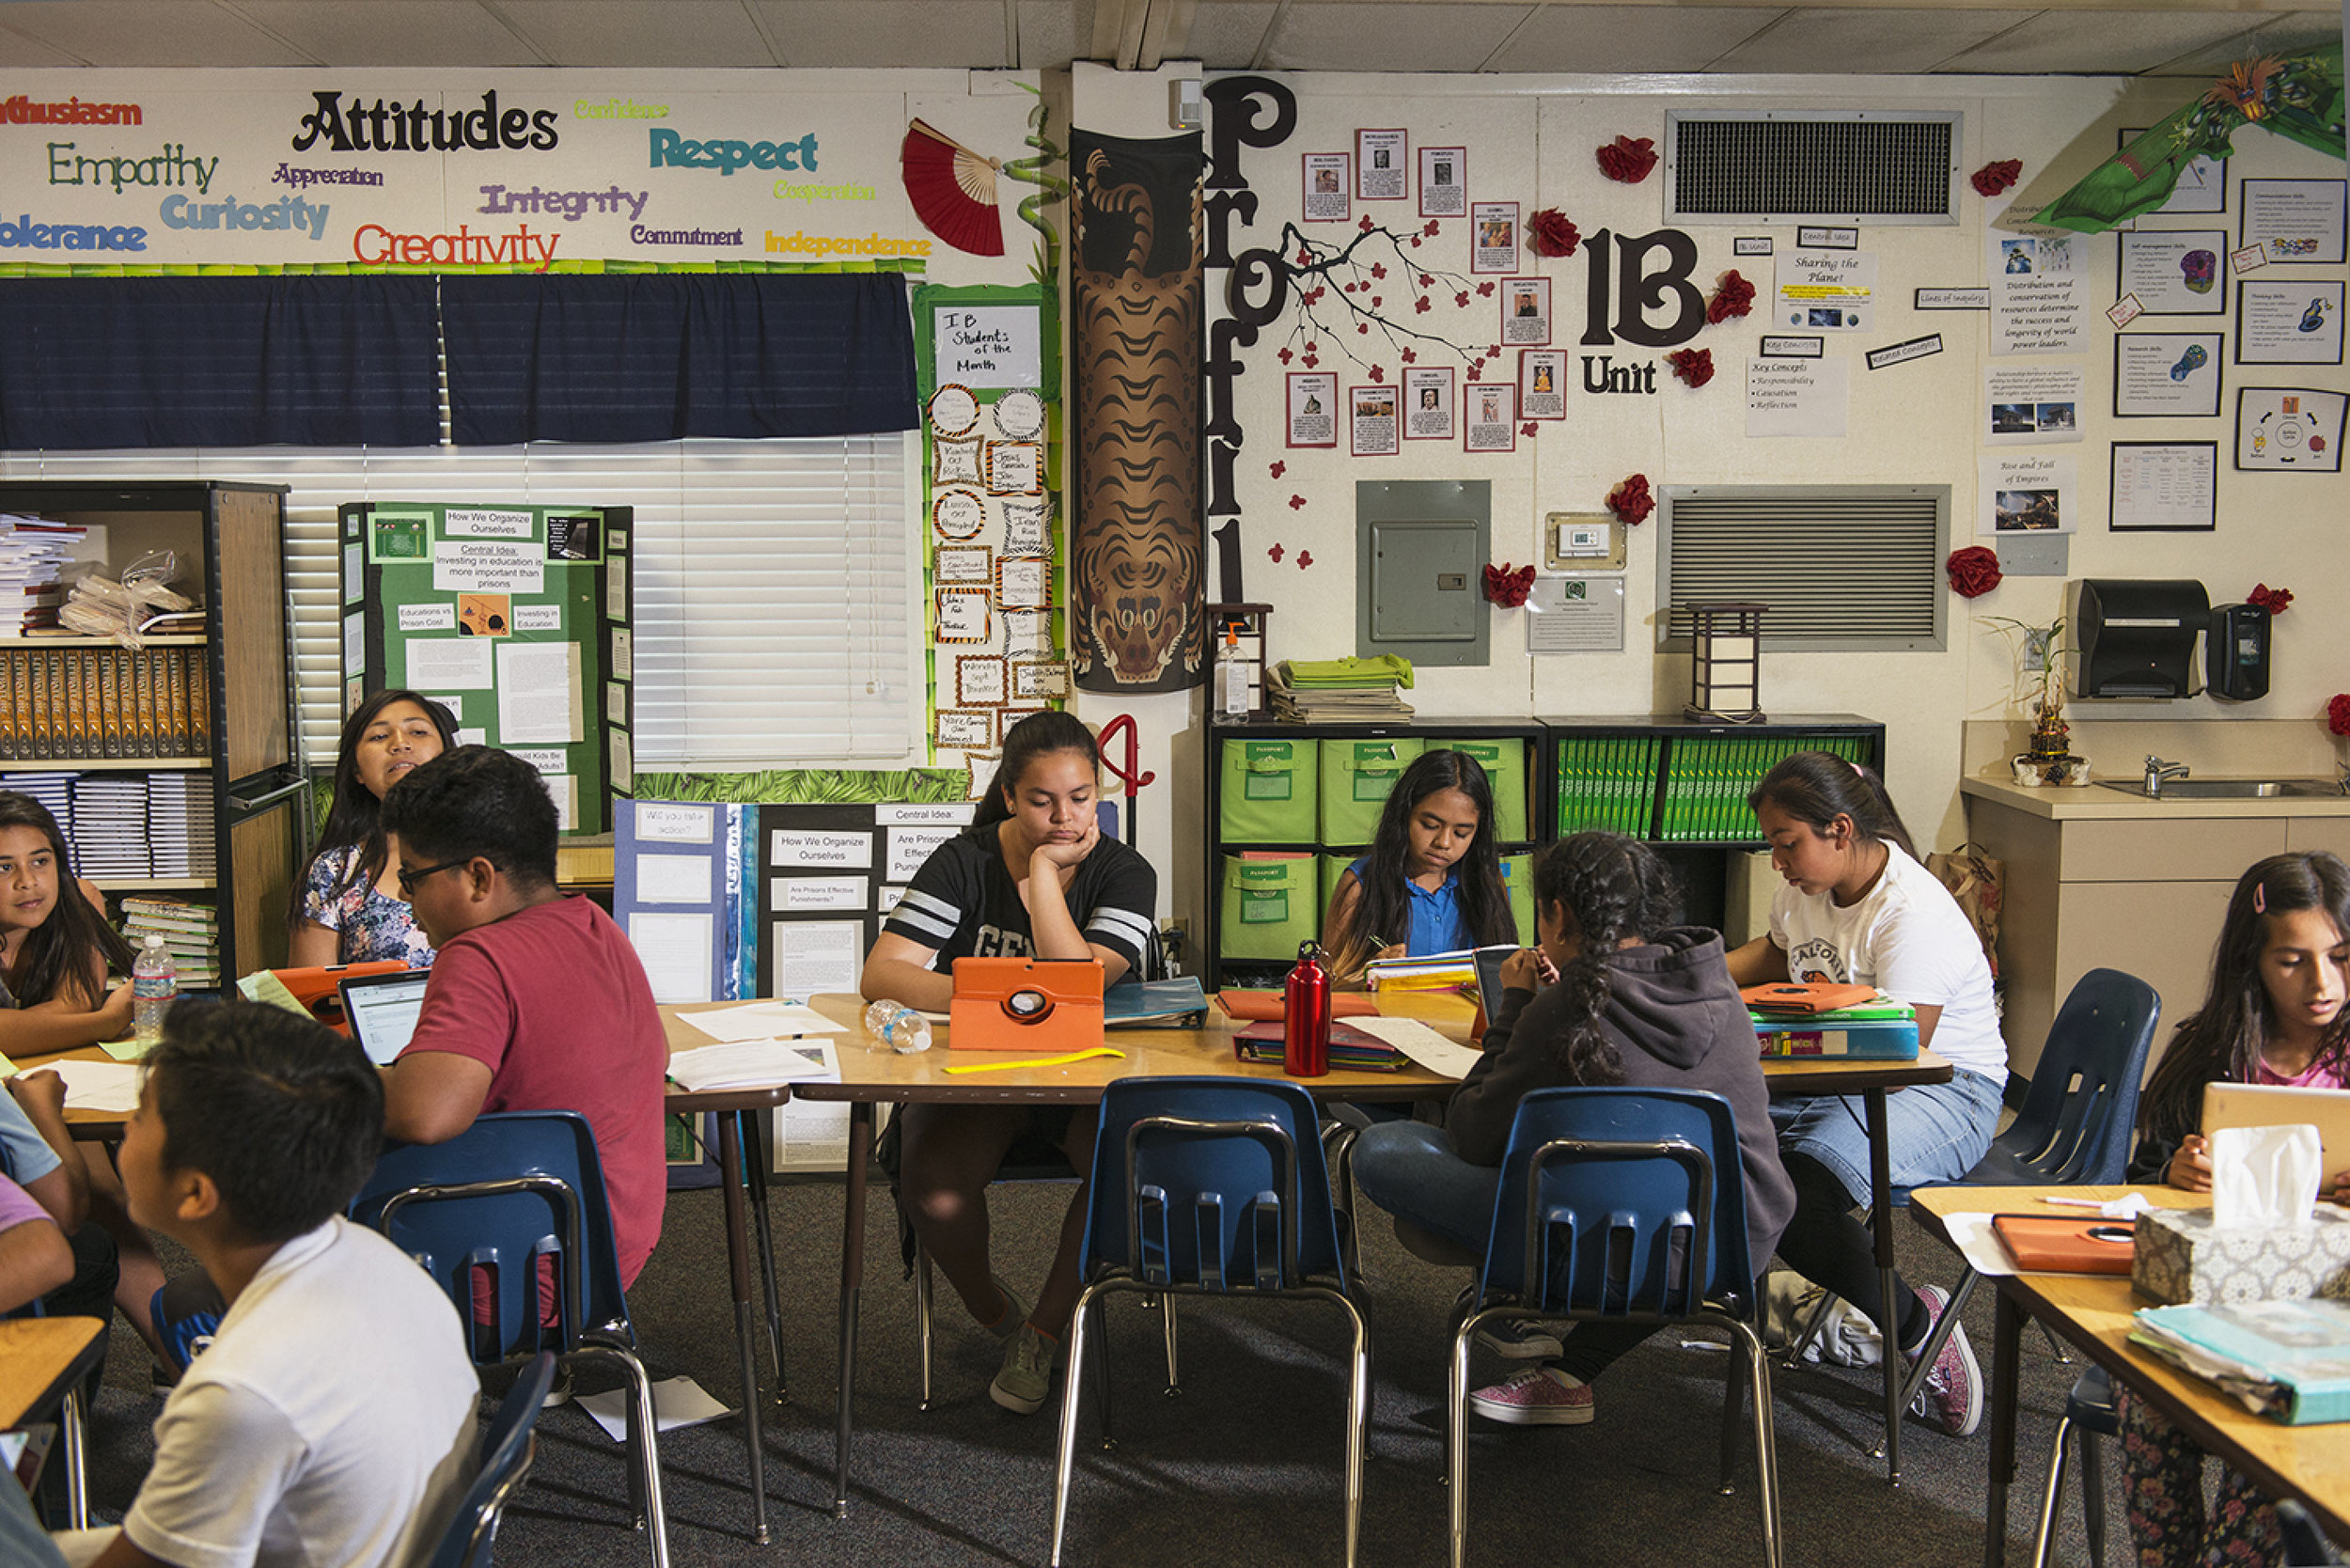 "Schools all over the country have invested into iPad's and tablets for students to use and take home, but about 30% of American school children don't have internet access at home and about 50% of the students at Alvin Dunn Middle school in San Marcos don't have internet. The San Diego based Qualcomm Wireless is attempting to close this ""homework gap"" with their free data plan program for kids to be able to do homework at home with their tablets. Shot for WIRED Magazine."